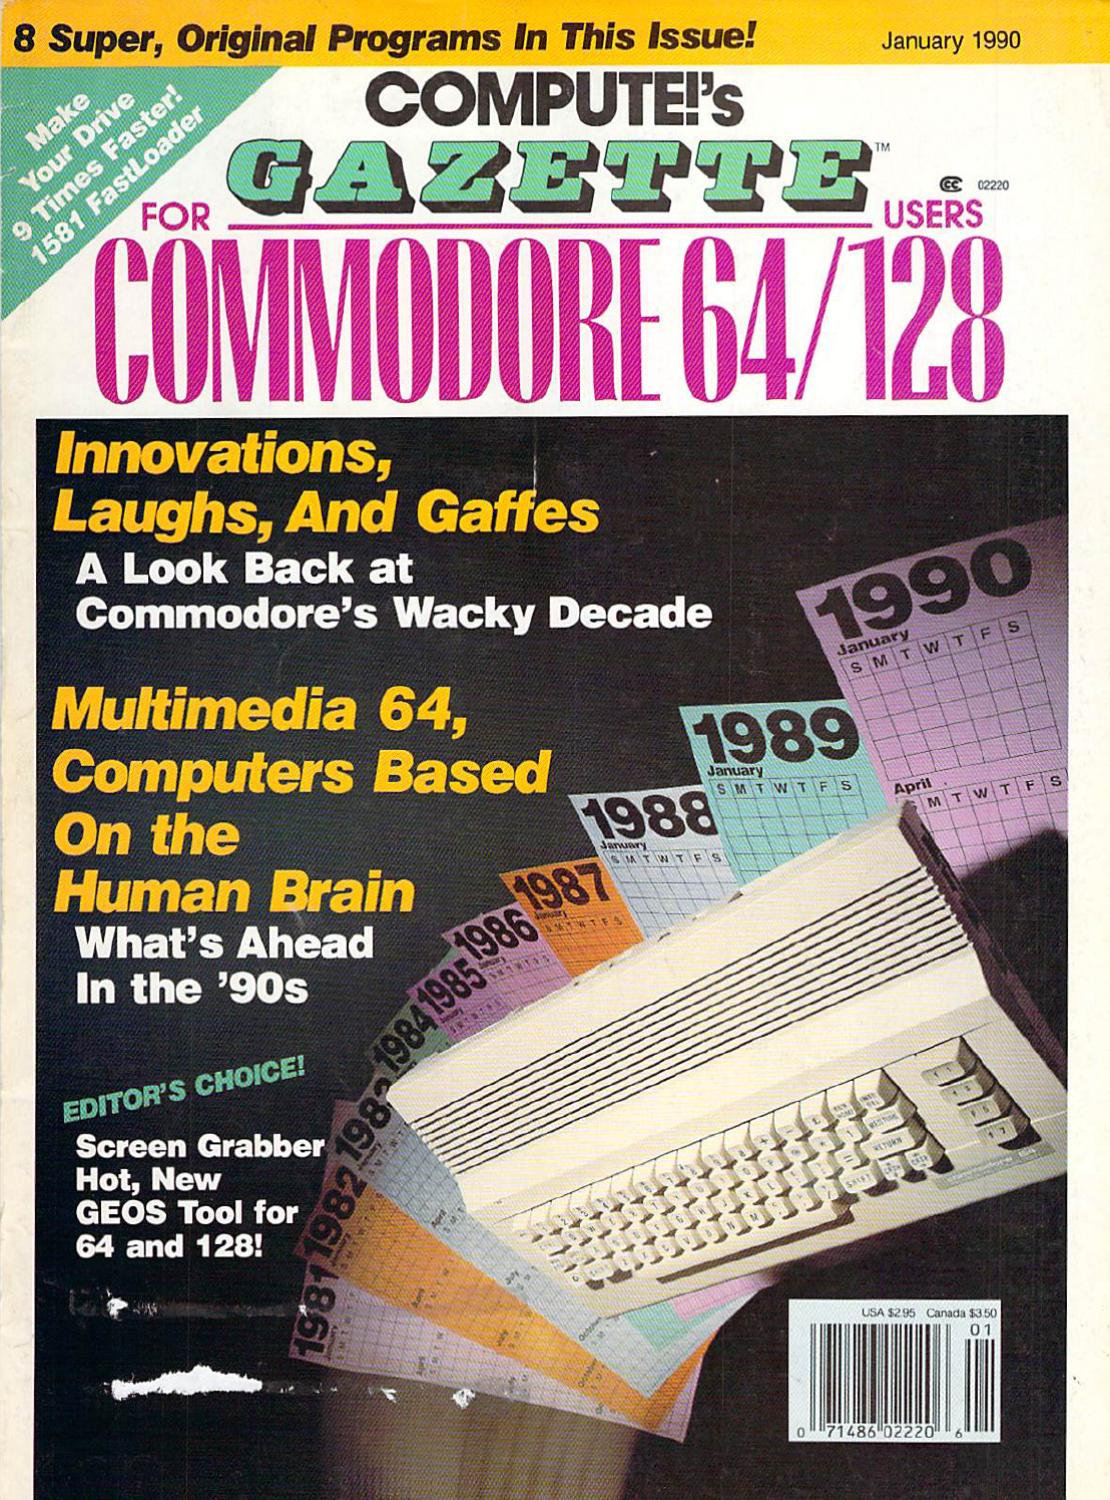 ComputeGazetteIssue791990Jan by Zetmoon issuu